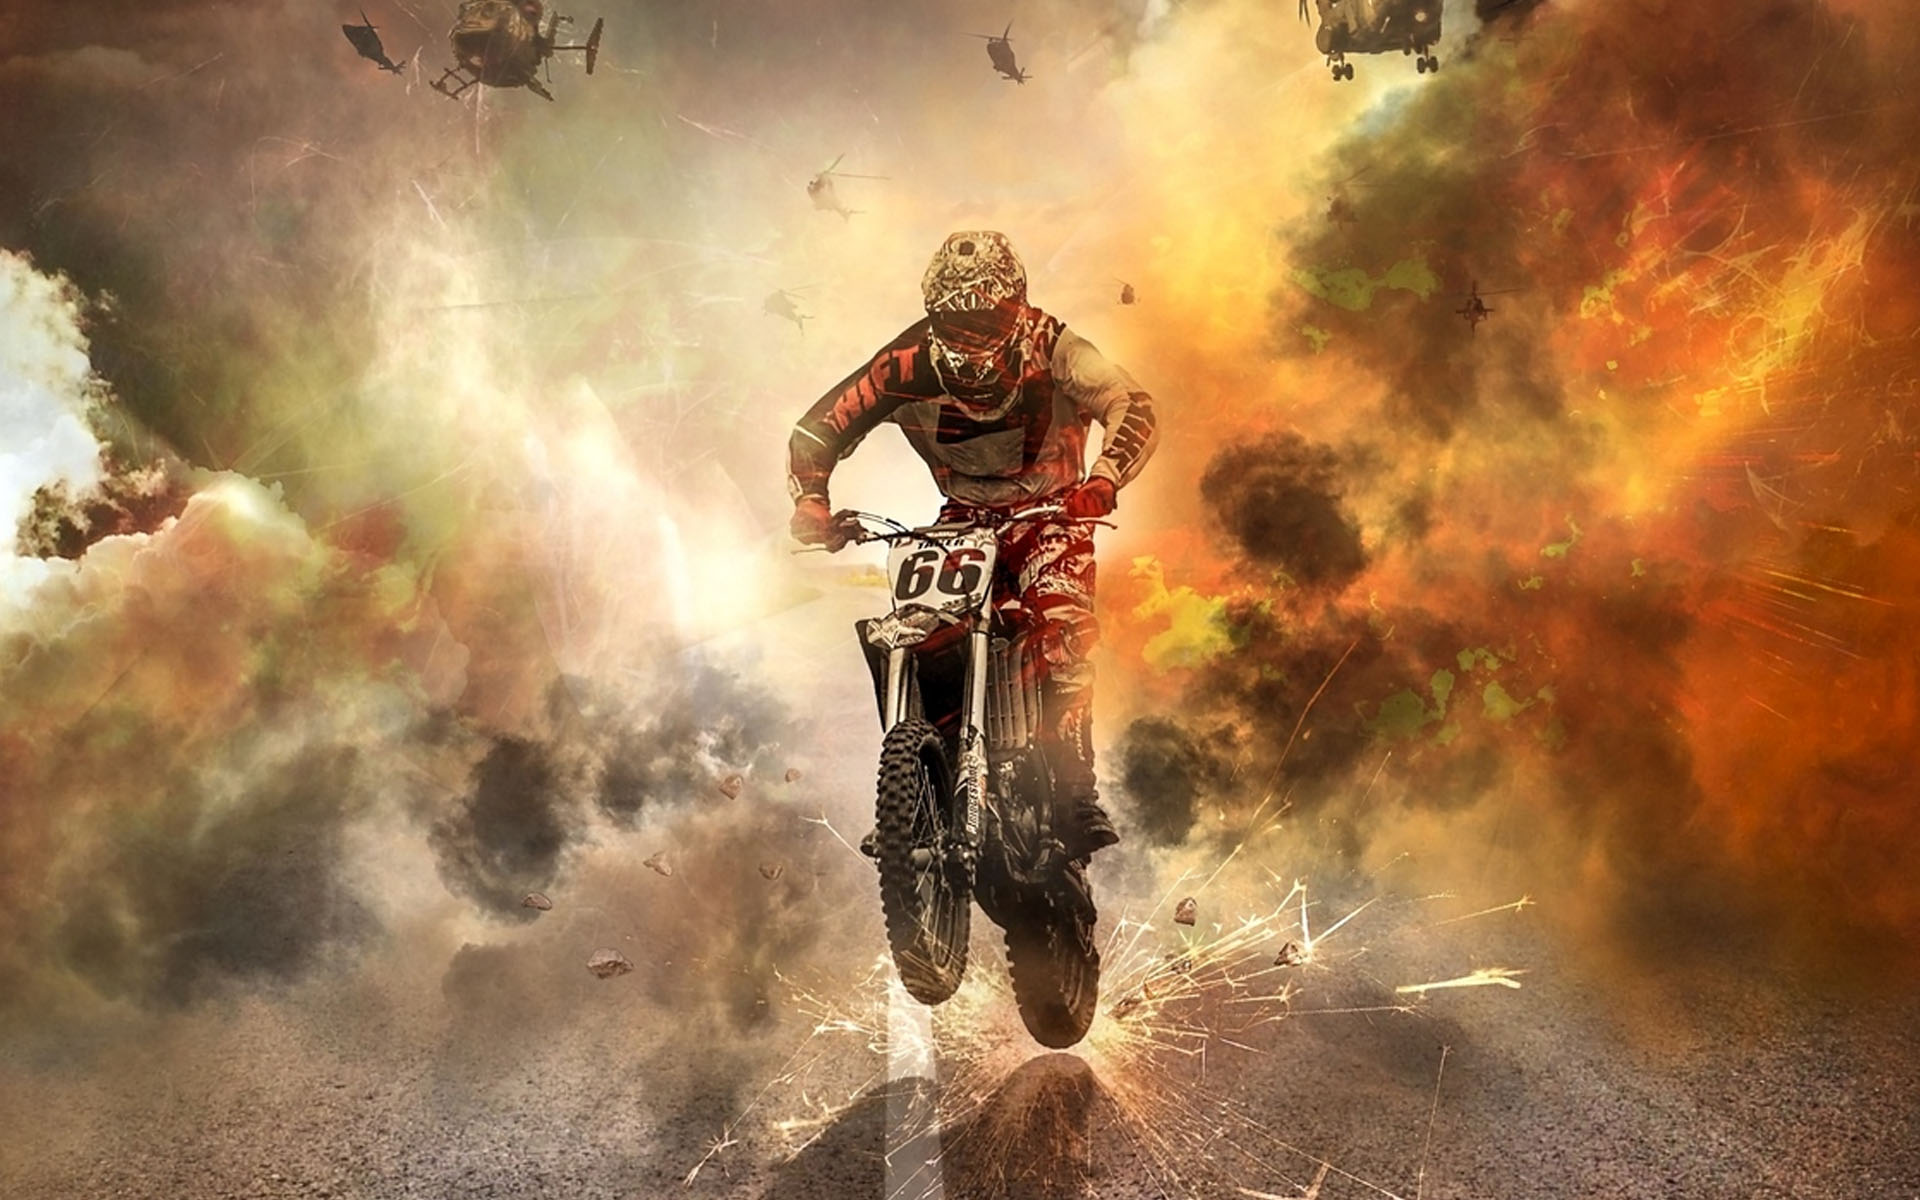 Famous Motorcycle Stunt Riders HD Wallpaper